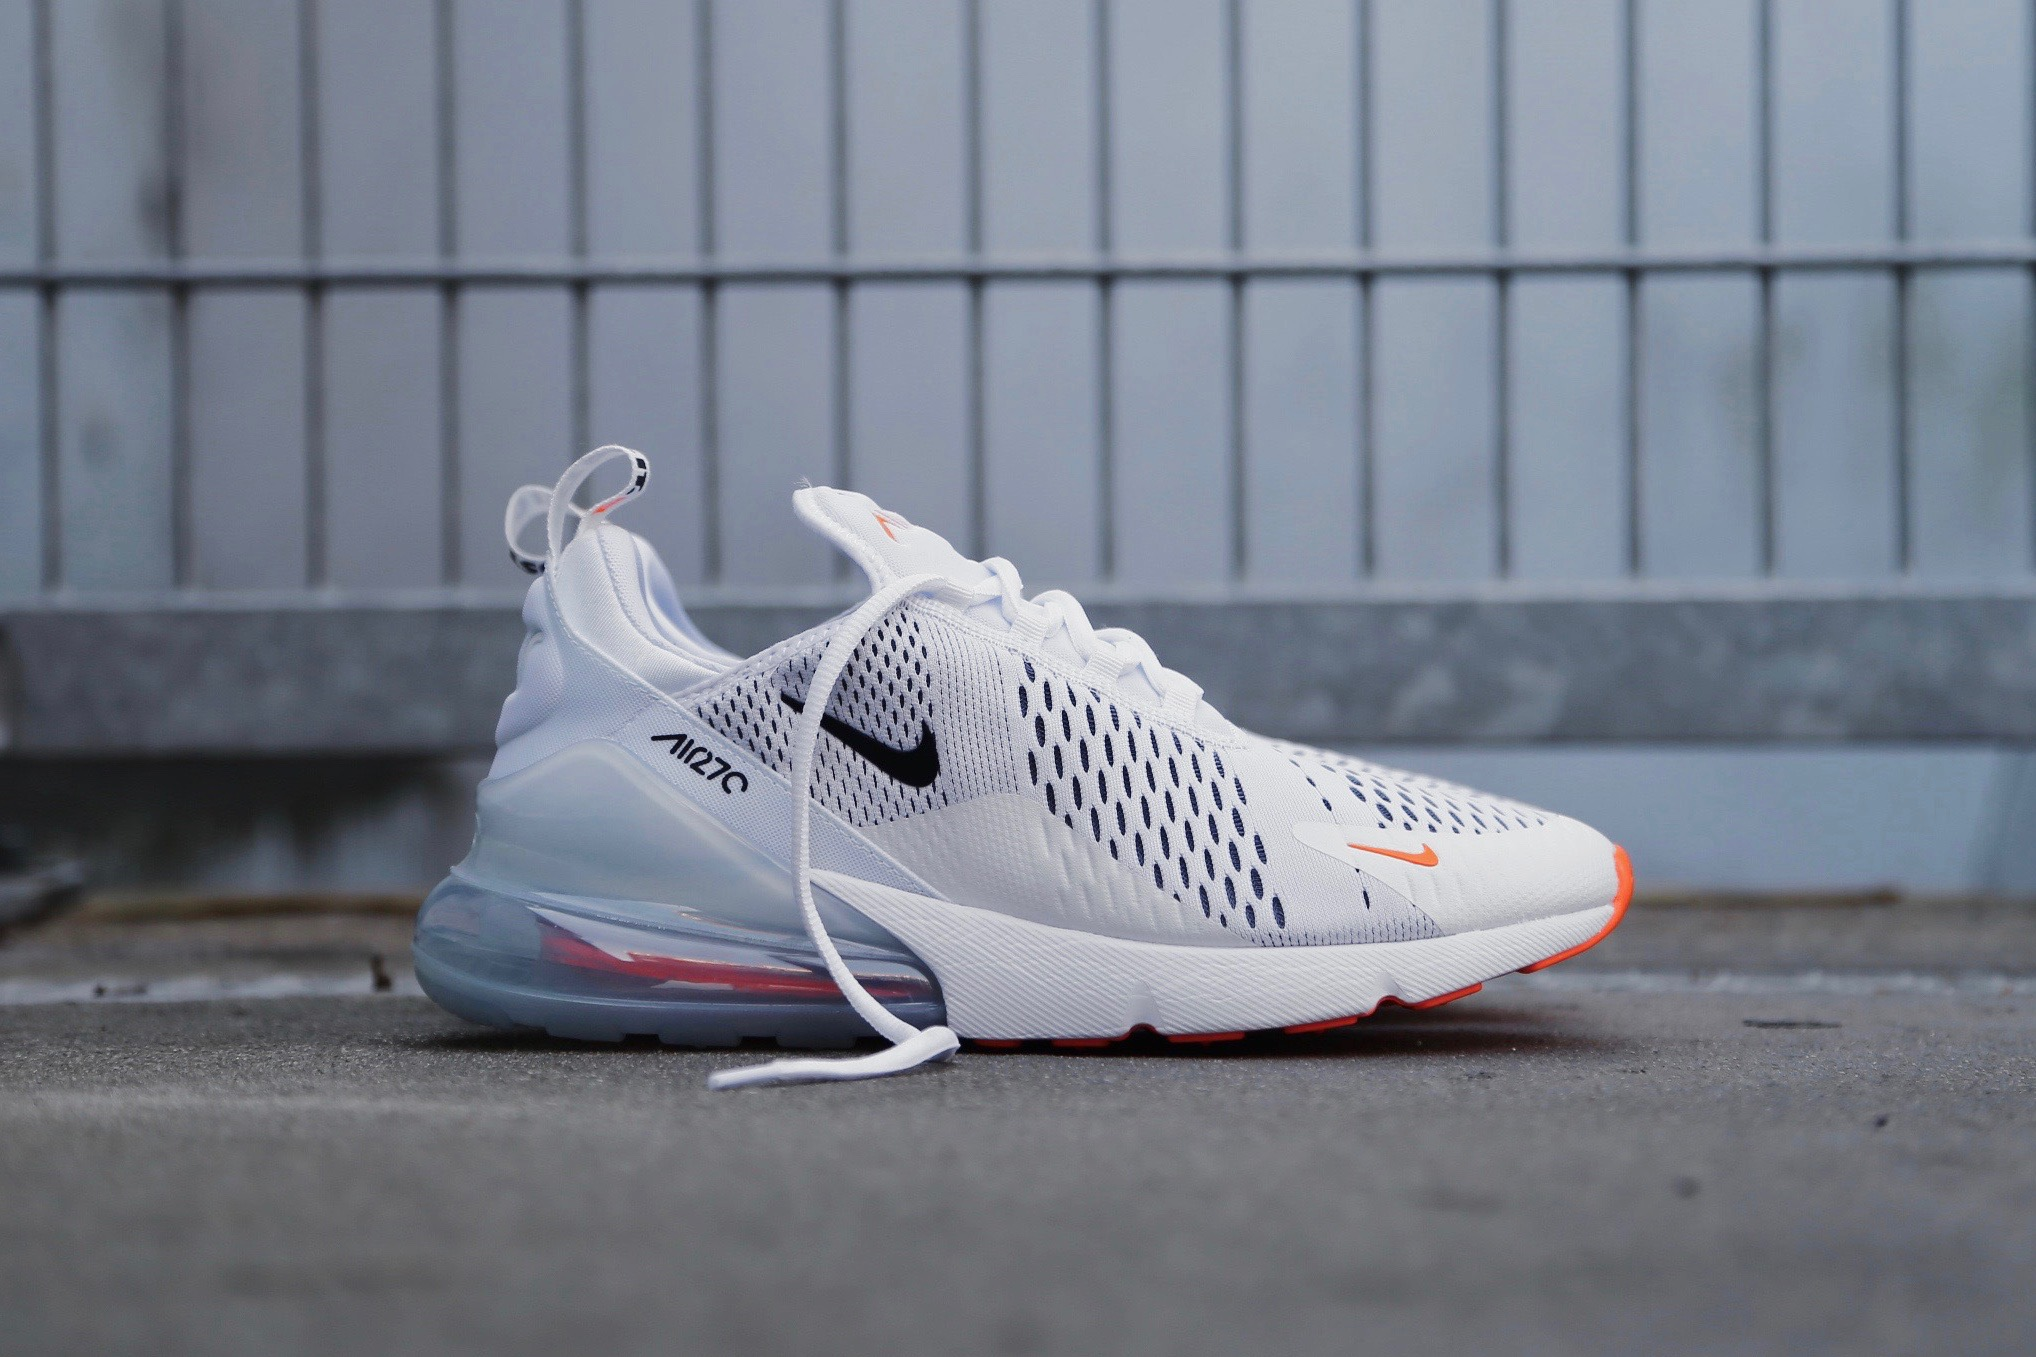 cozy fresh bf7a1 c247e Nike Air Max 270 - White / Total Orange / Black